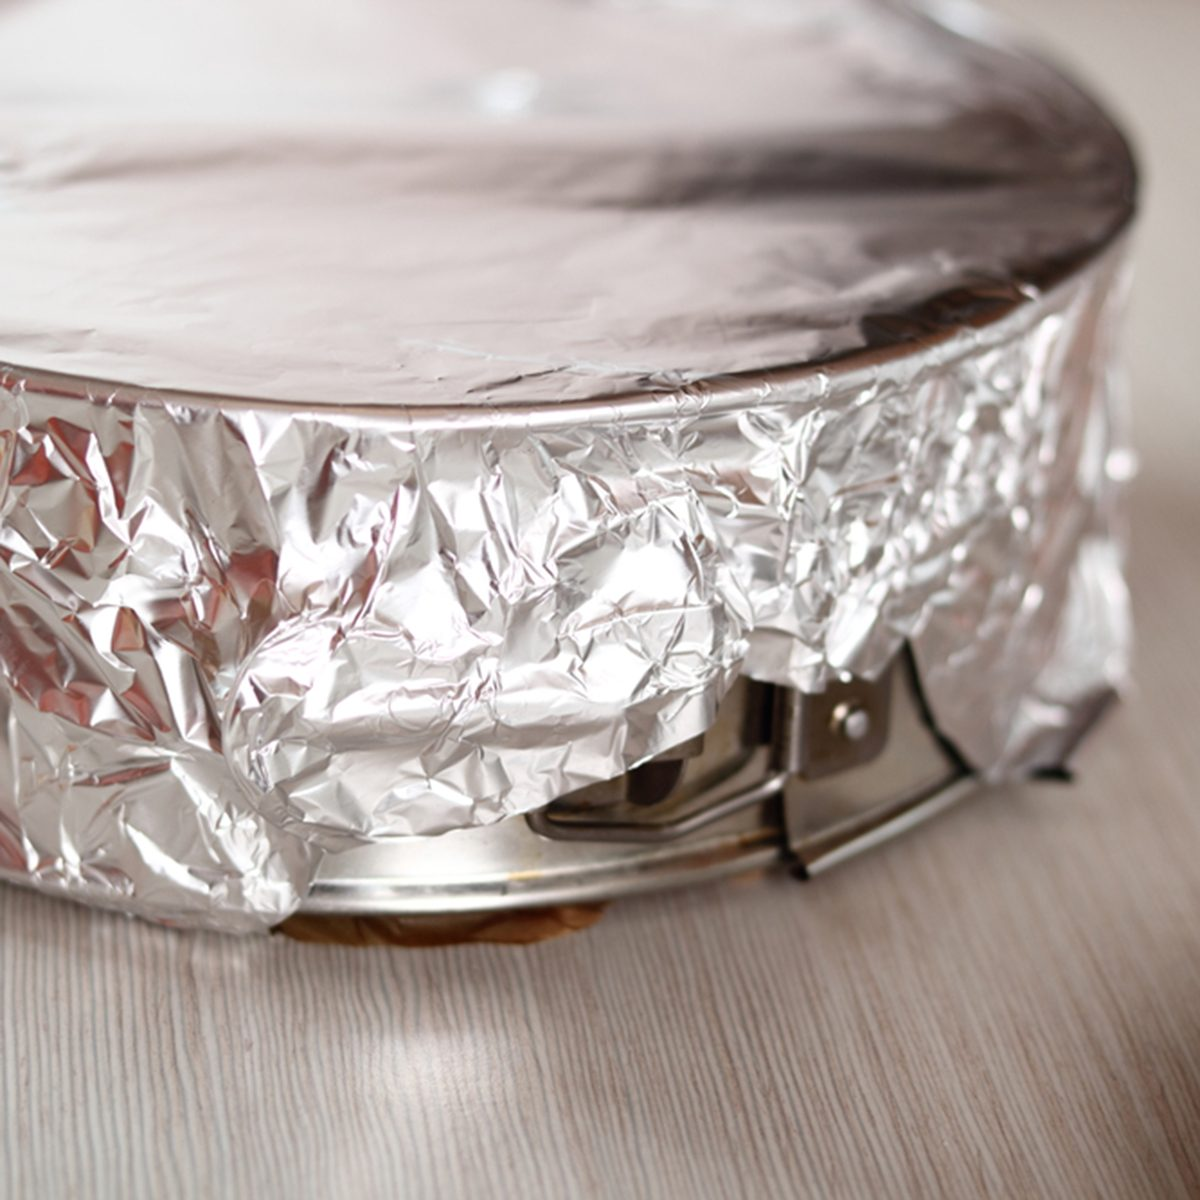 Covering baking pan with foil before and place to fridge.